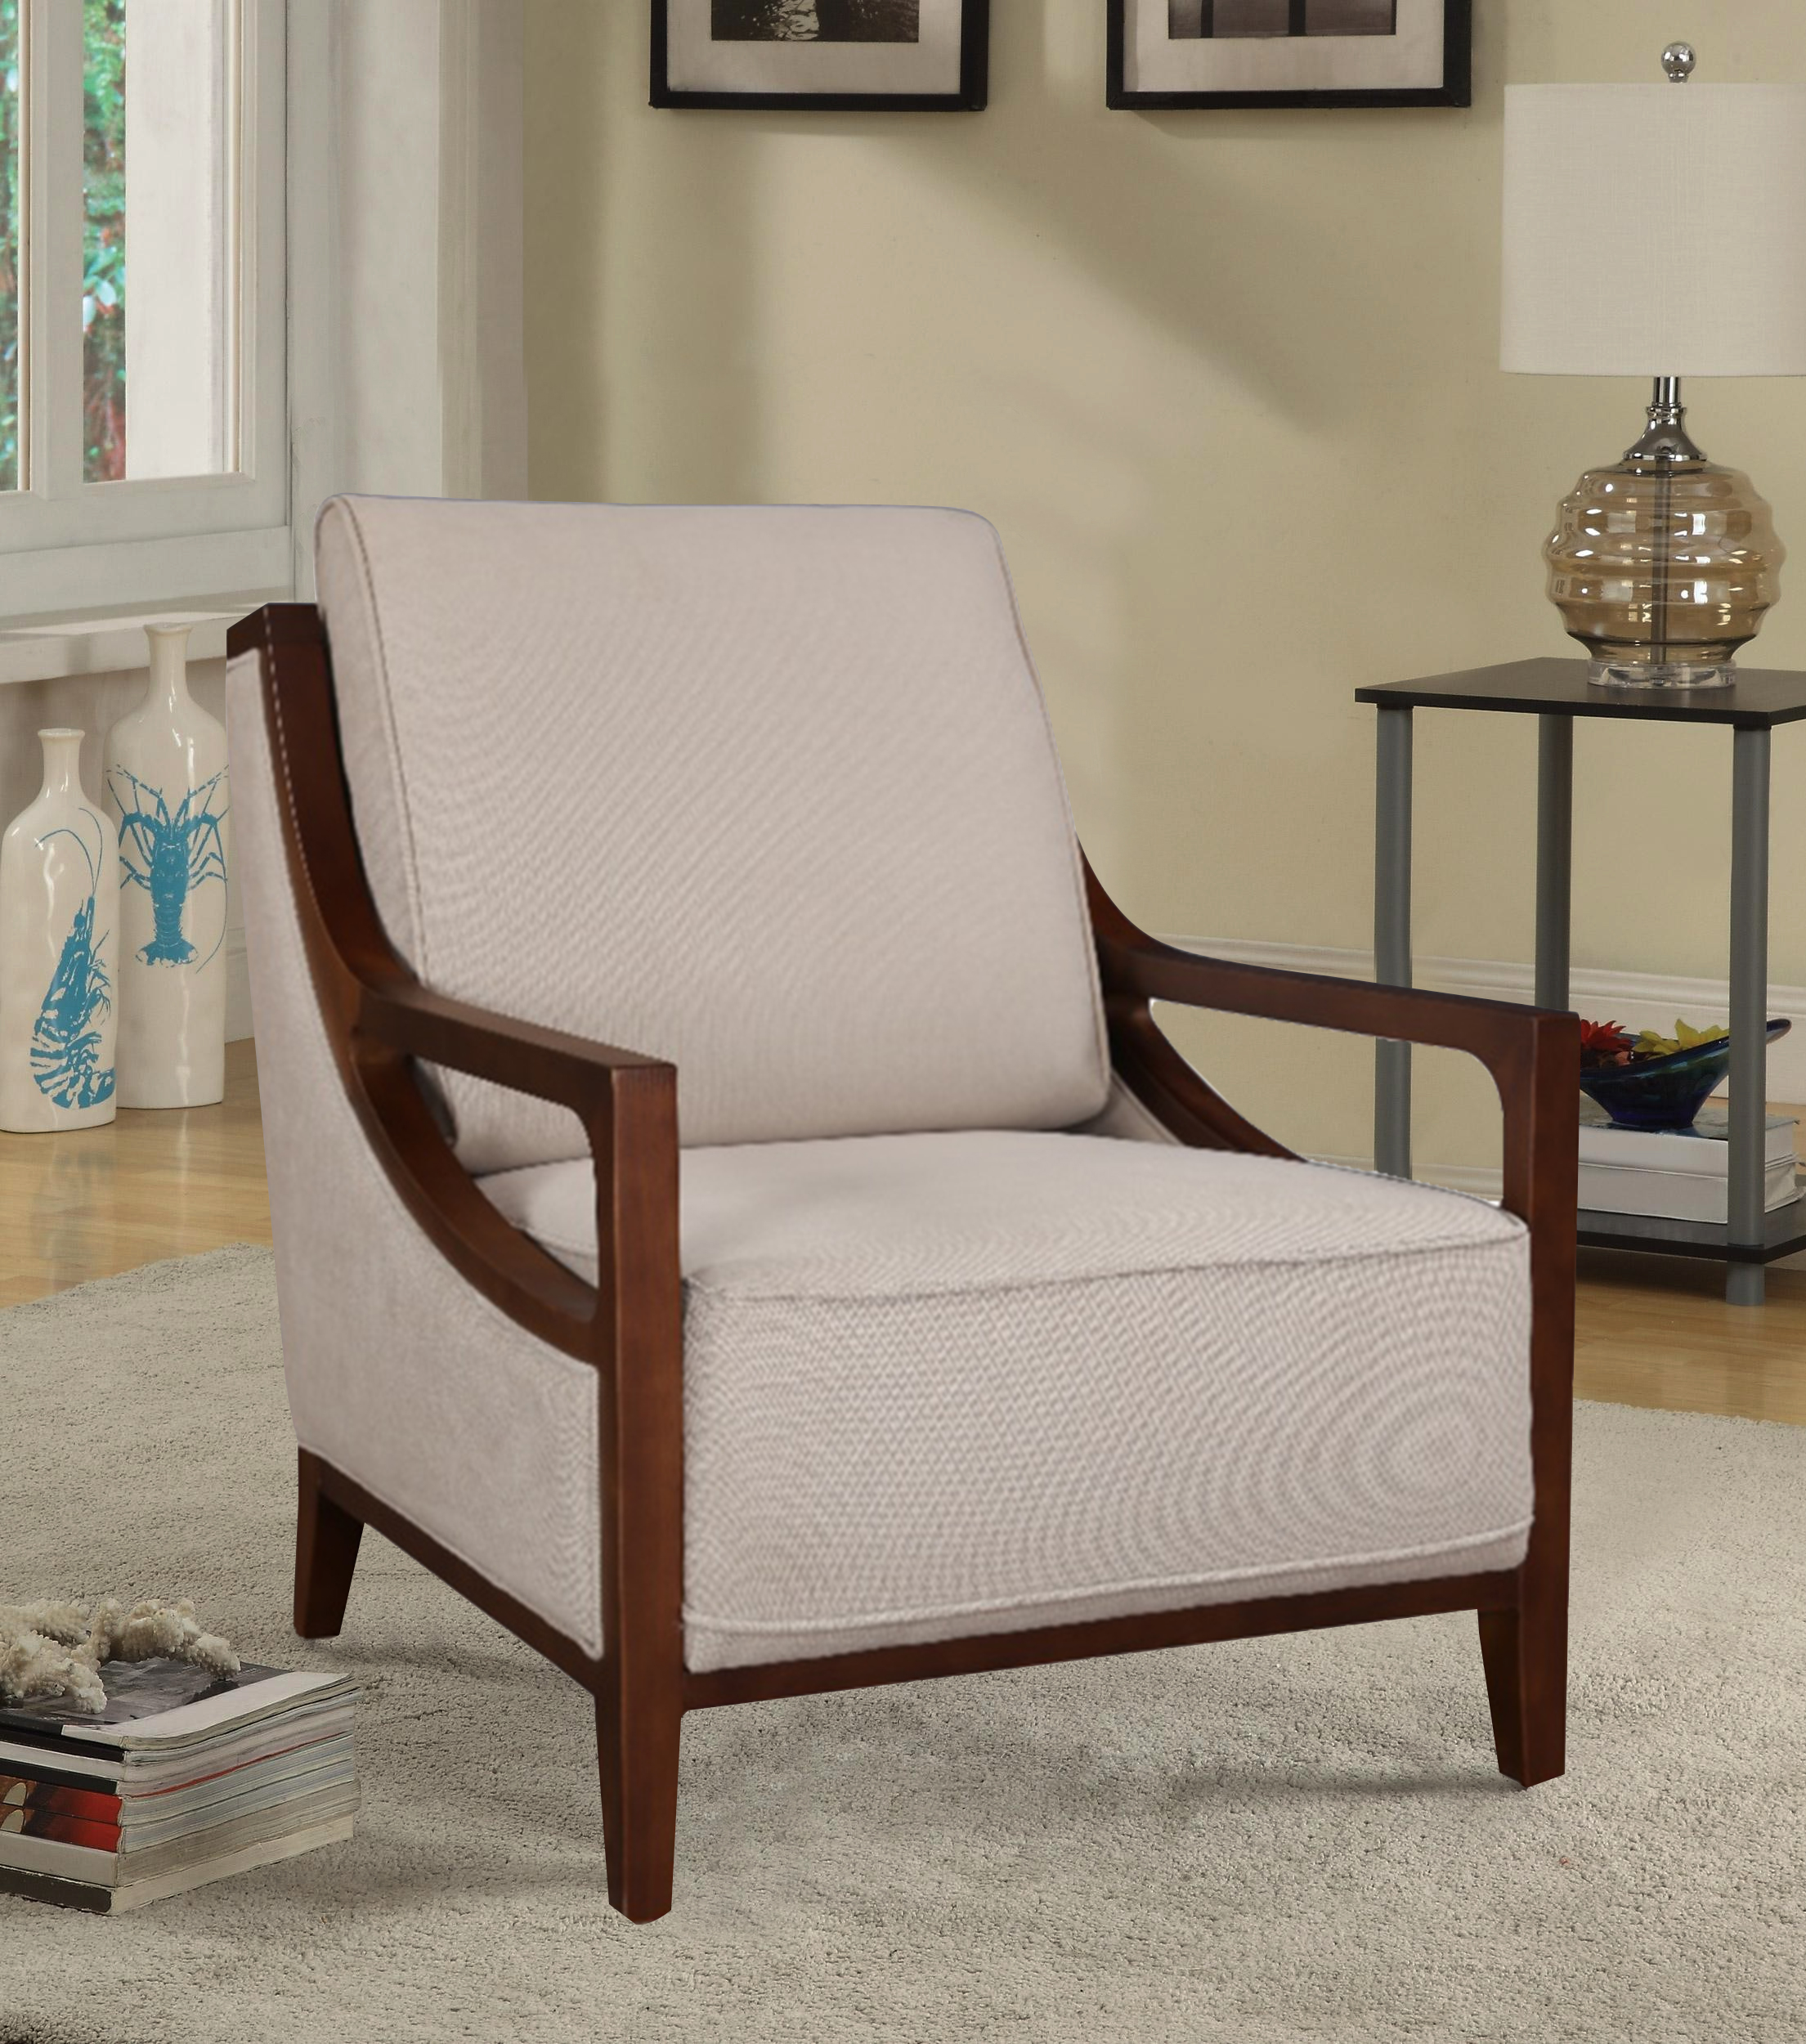 Sylvester Fabric Arm Chair in Beige Colour by HomeTown